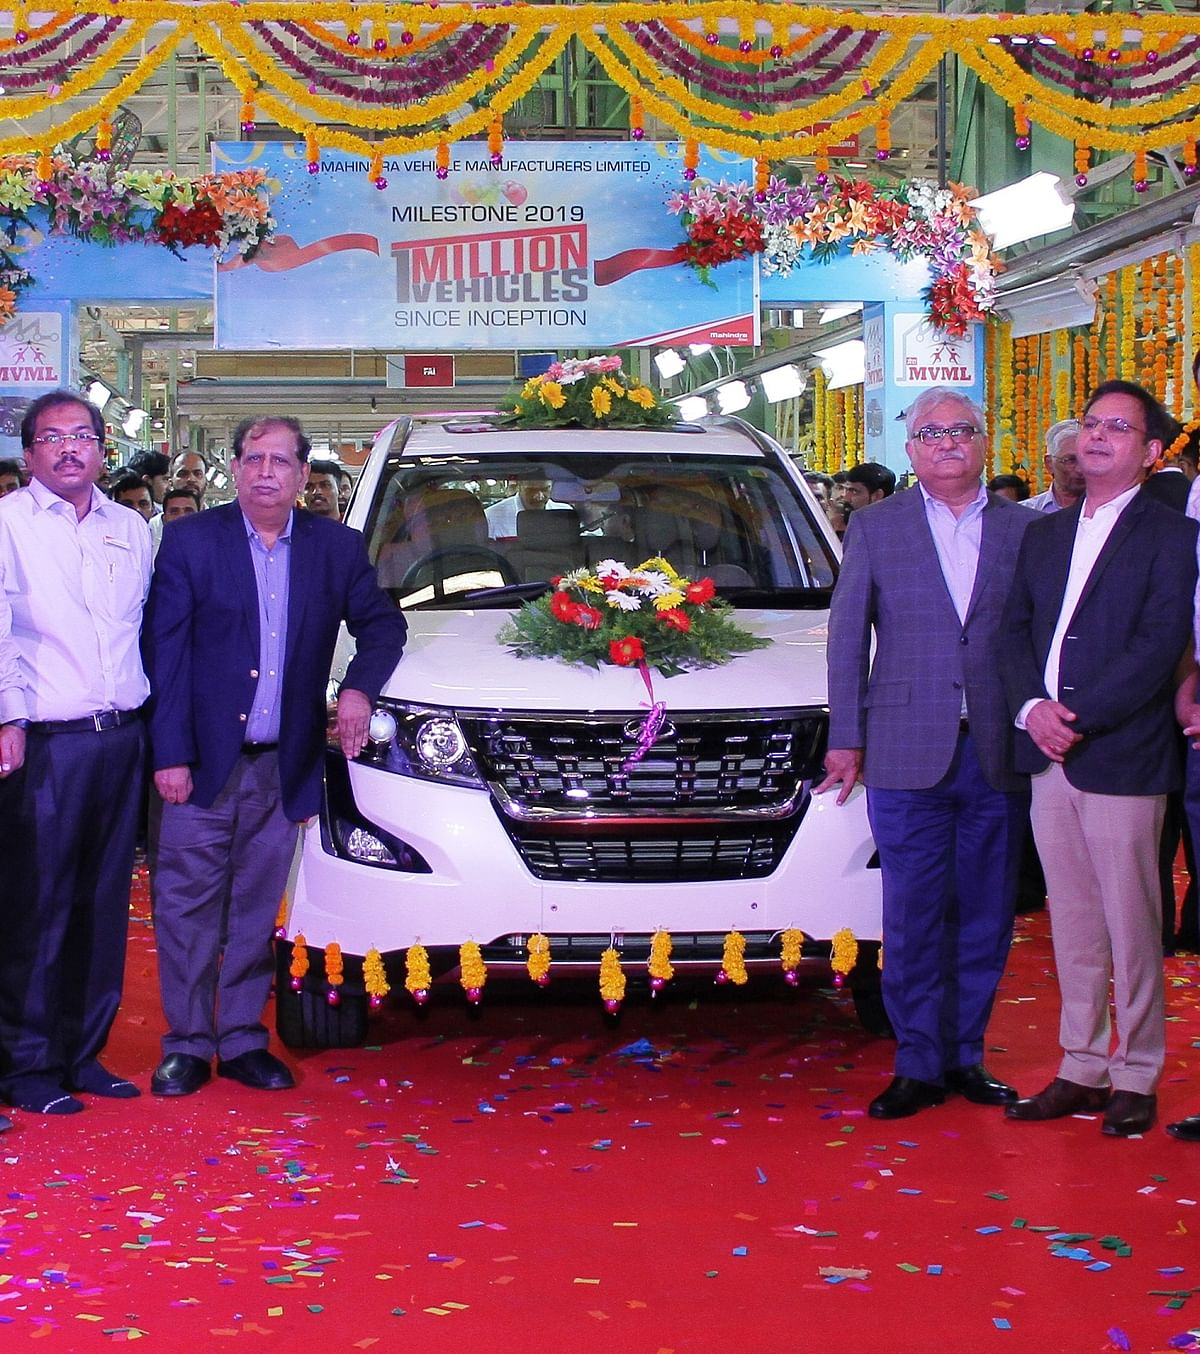 Mahindra rolls out one-millionth car from three plants simultaneously